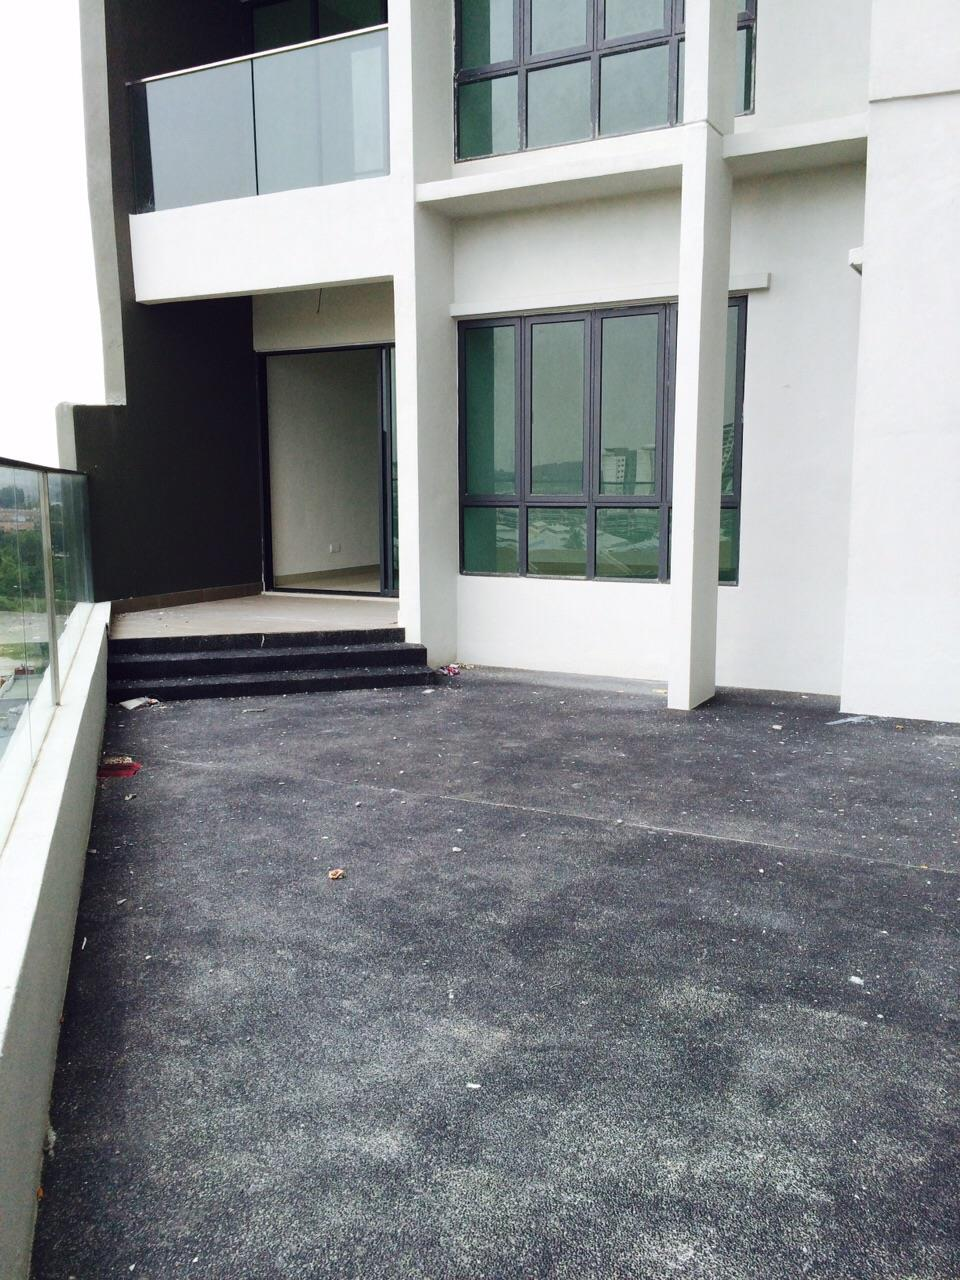 Univ 360 Place Designer Suites for sale, Seri Kembangan, with Garden